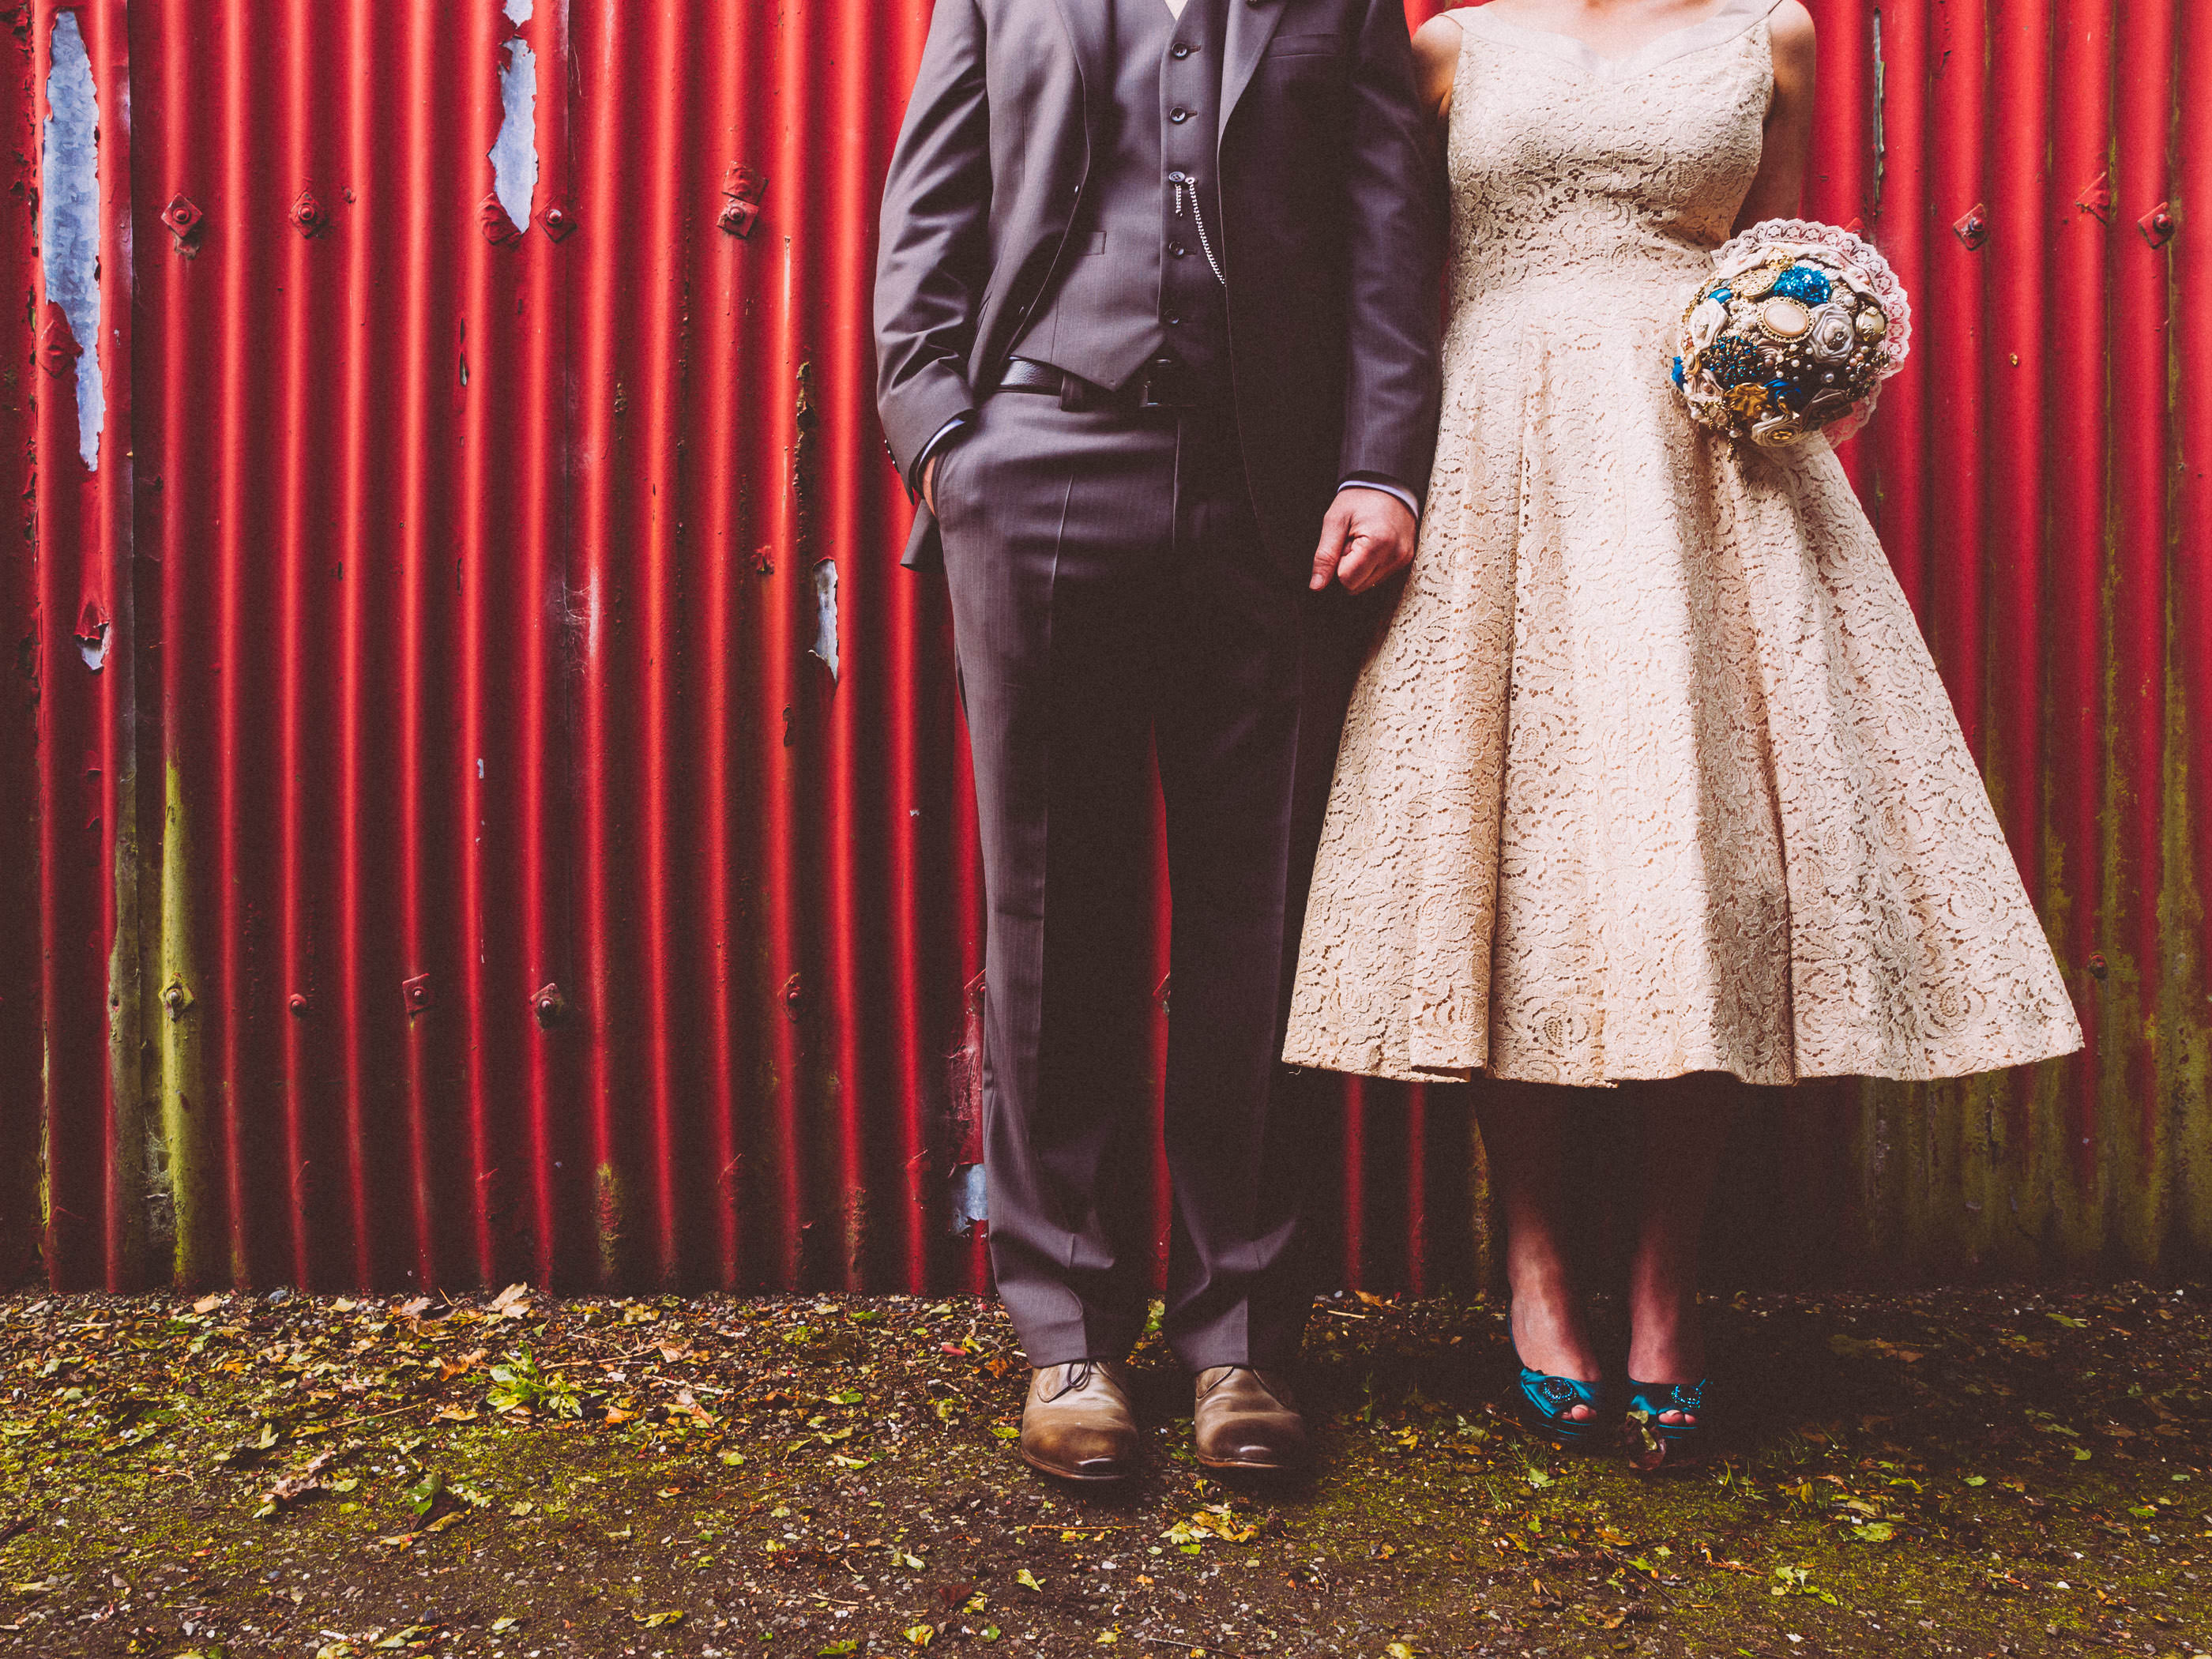 vintagewedding in Ireland, couple in front of red barn, vintage dress